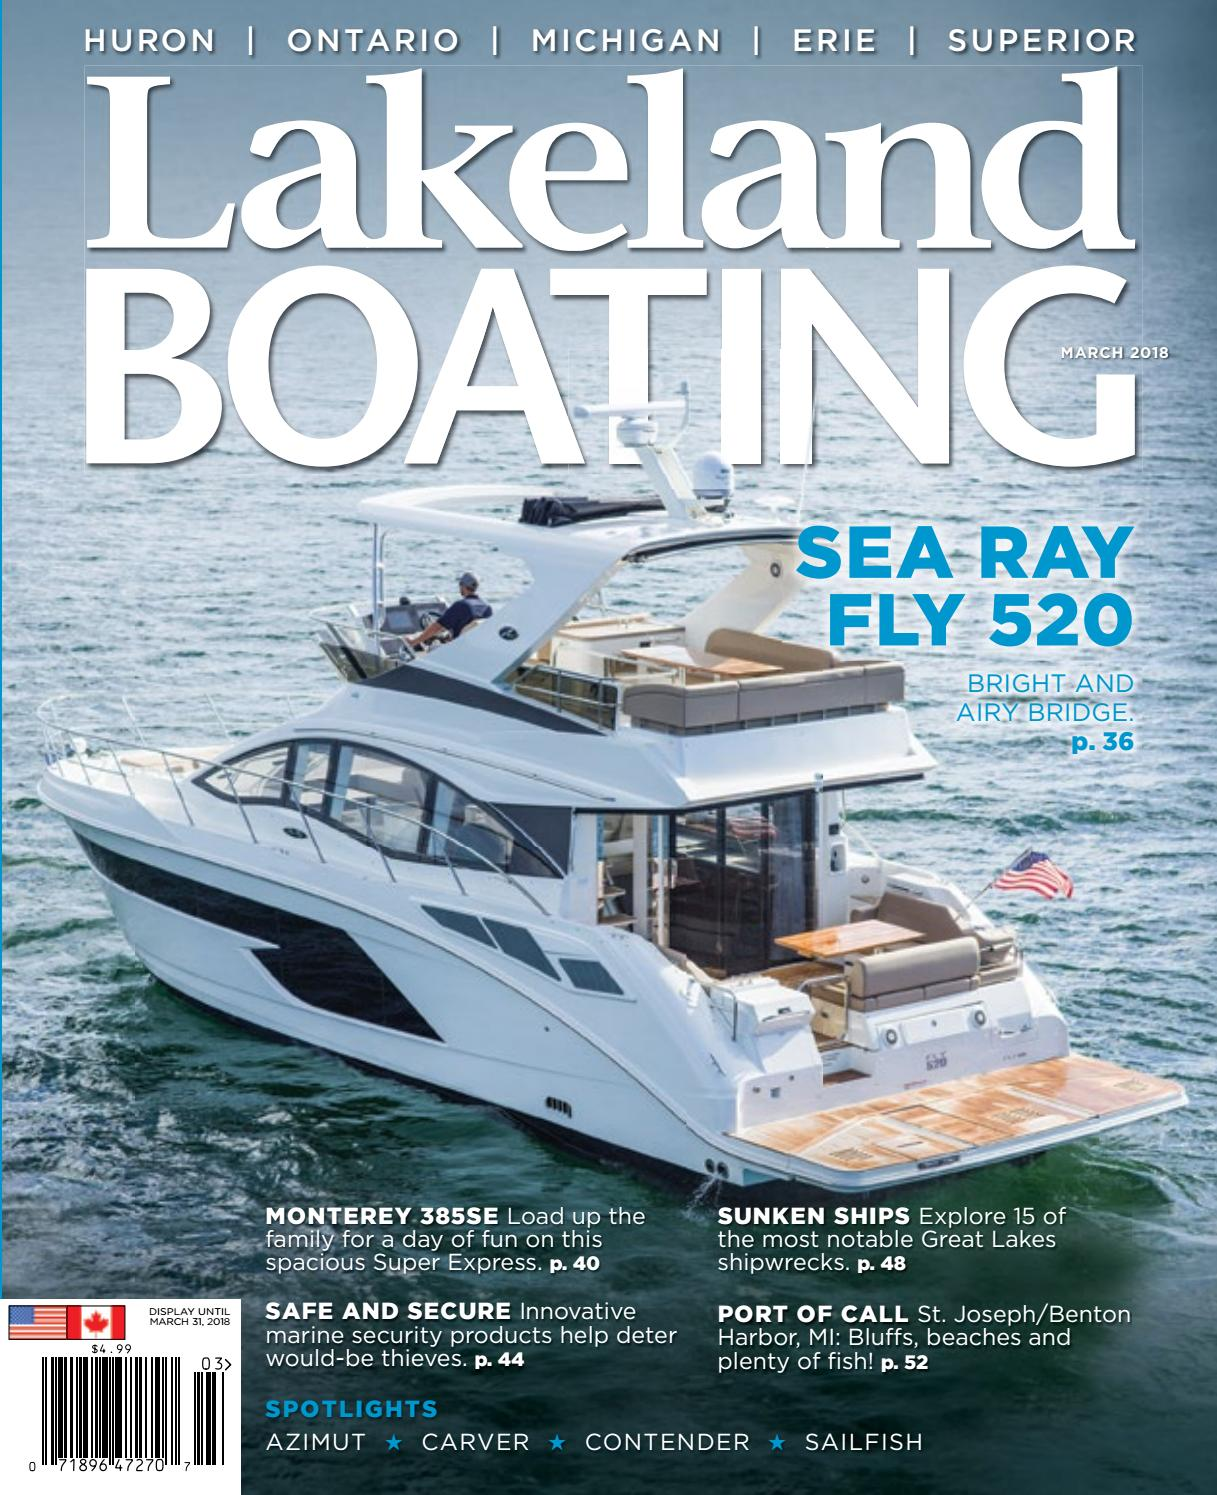 march 2018 by lakeland boating magazine issuu march 2018 by lakeland boating magazine